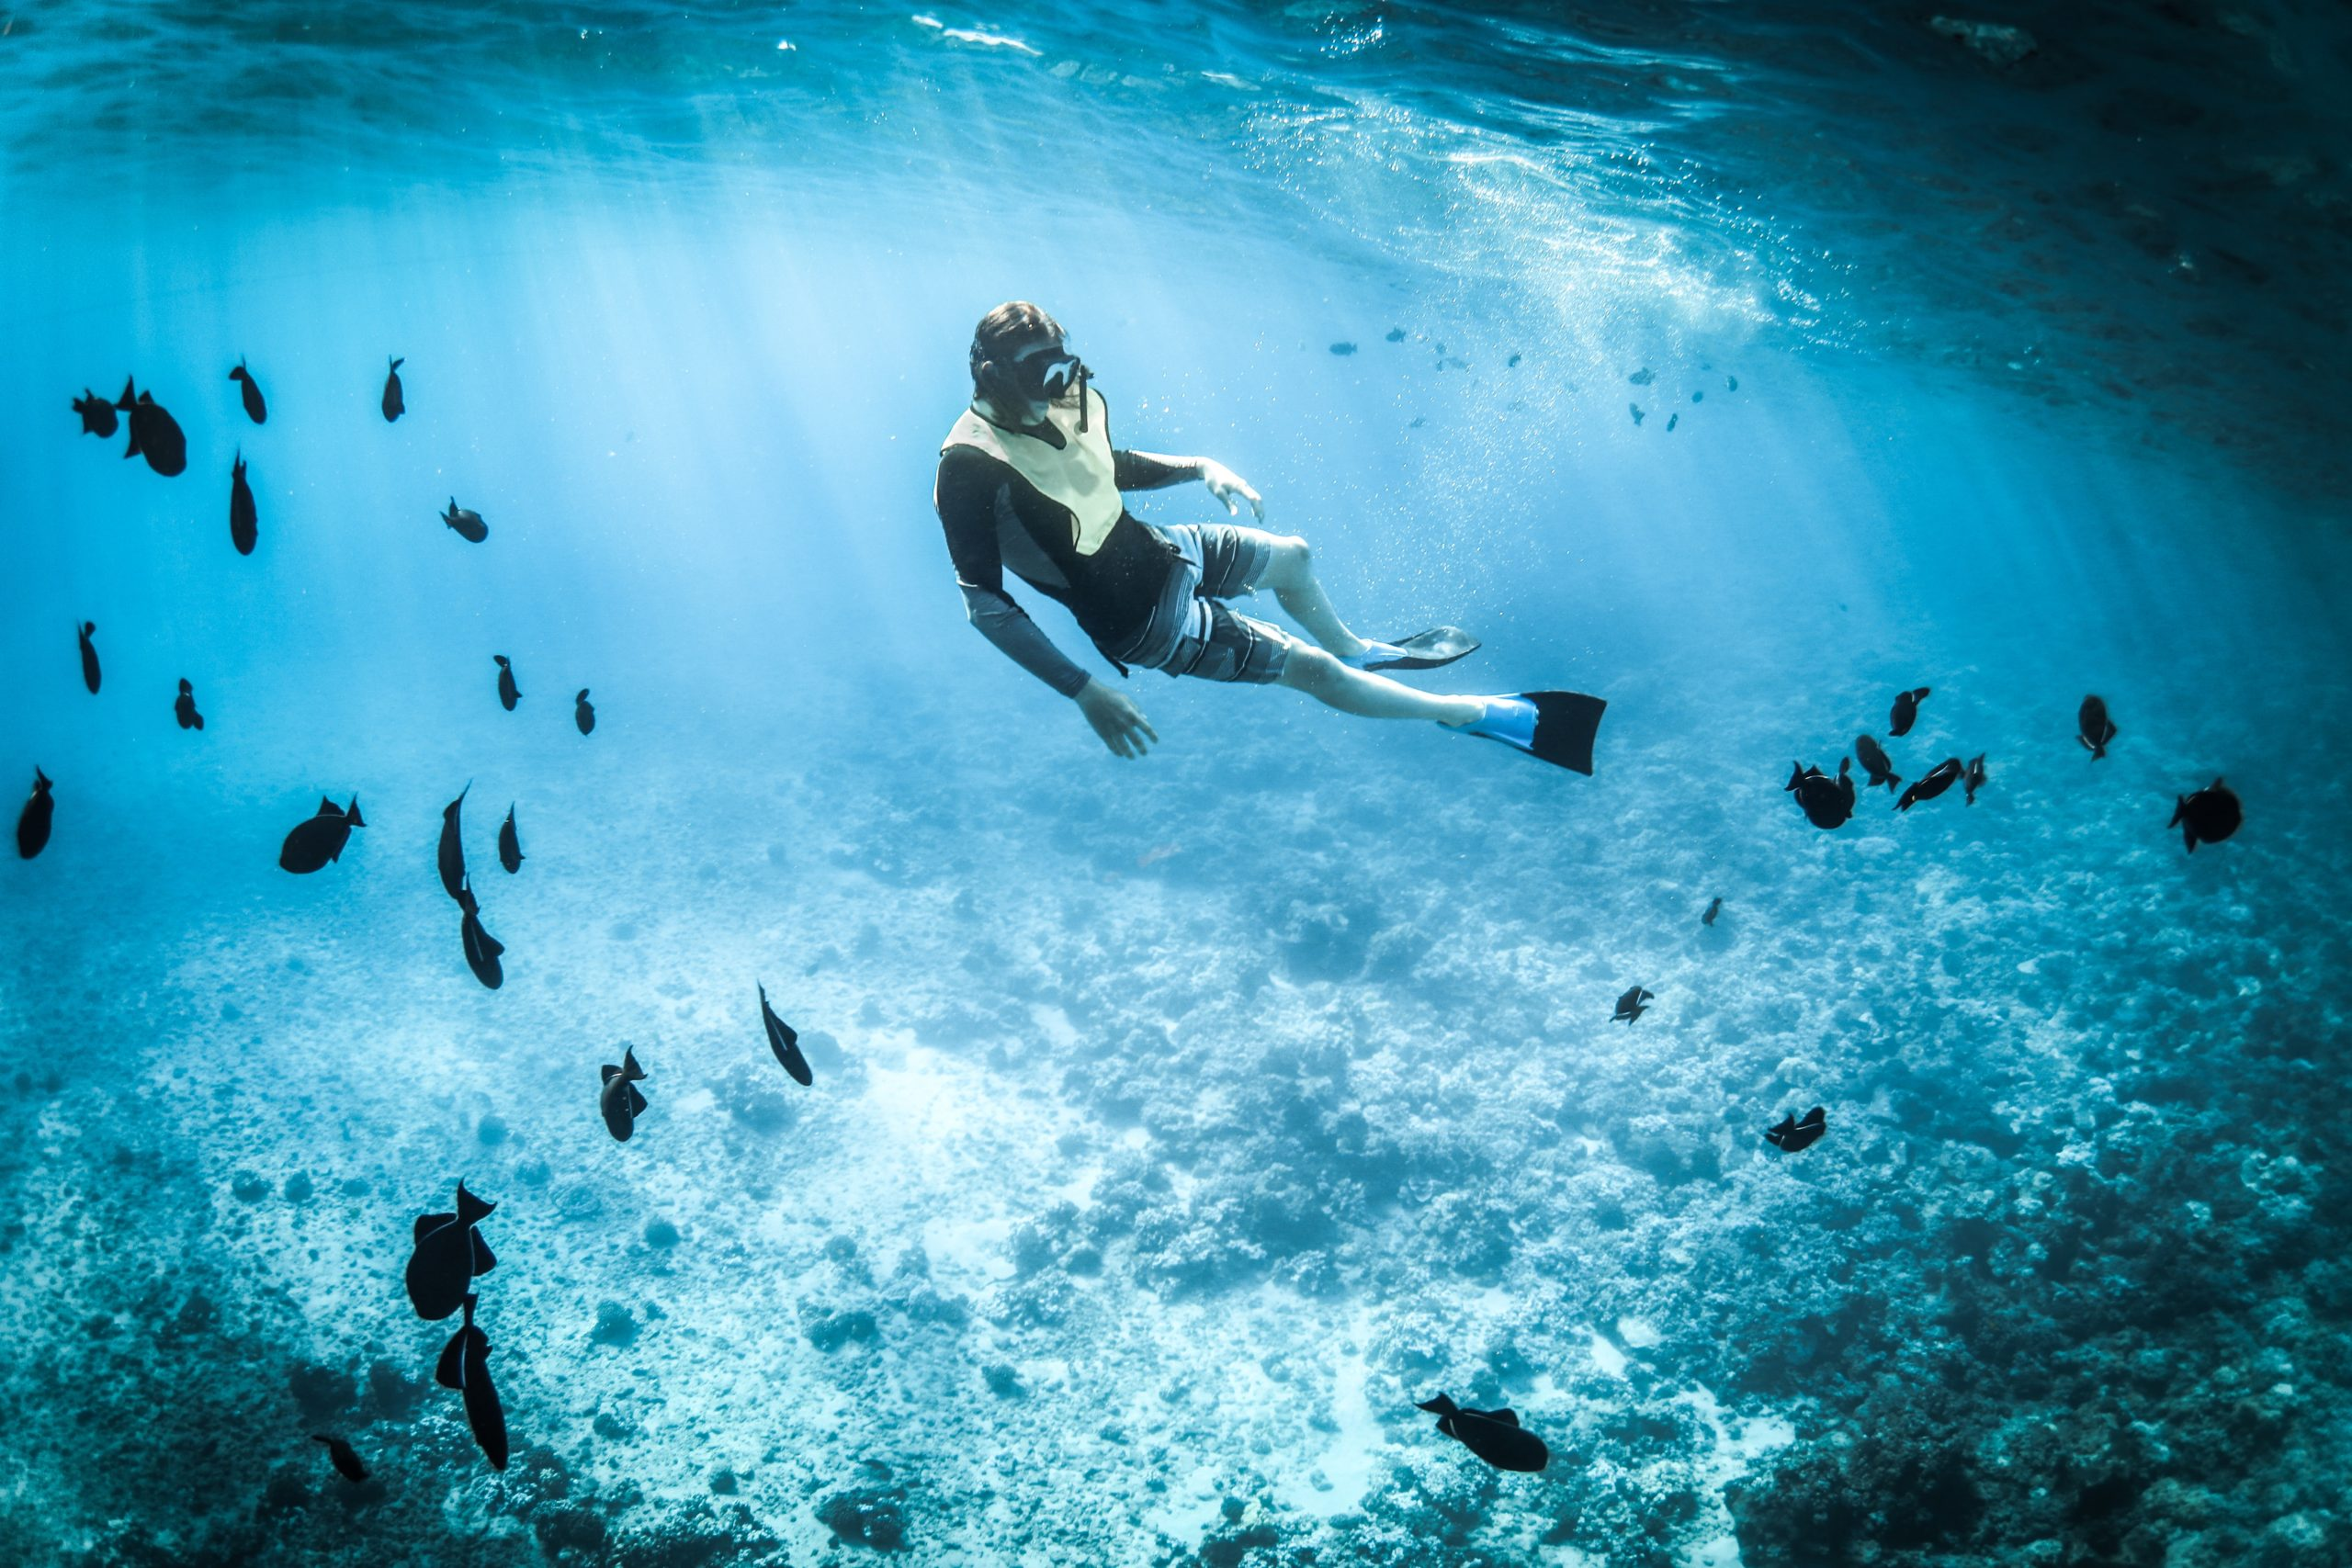 5 Things To Determine Your Deep Dive Level